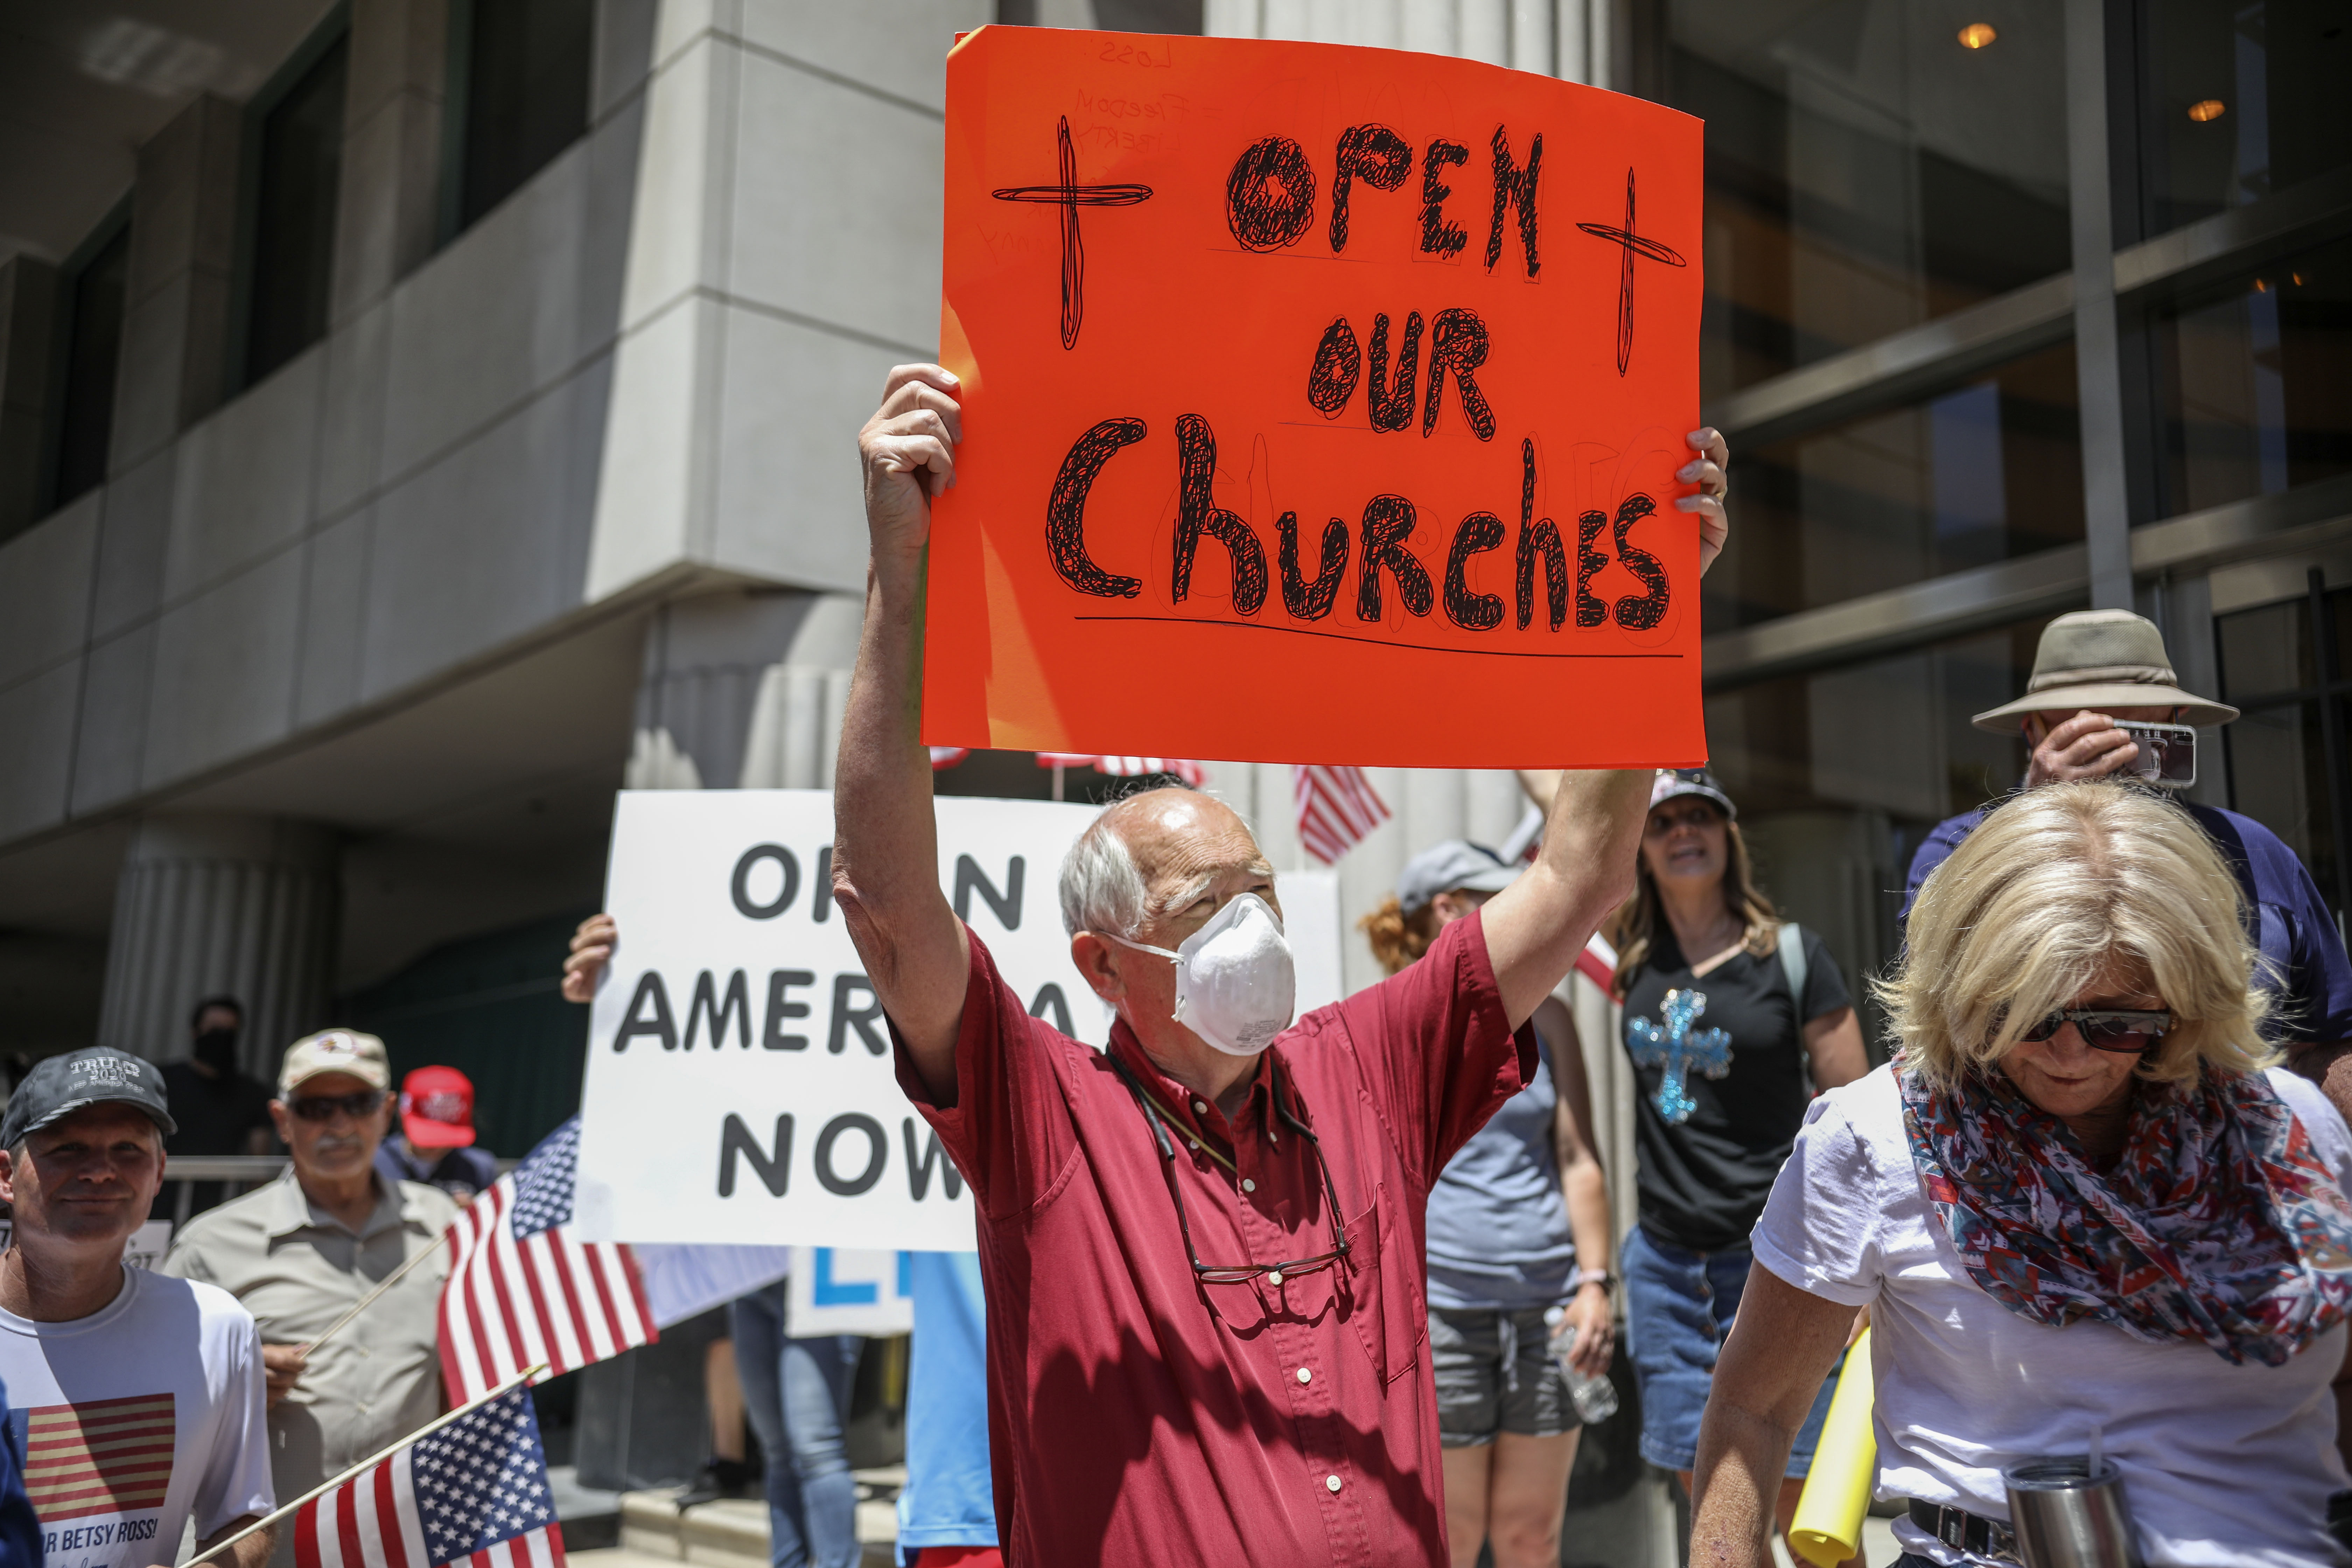 Demonstrators holding signs demanding their church to reopen, protest during a rally to re-open California and against Stay-At-Home directives on May 1, 2020 in San Diego, California. (Photo by SANDY HUFFAKER/AFP via Getty Images)